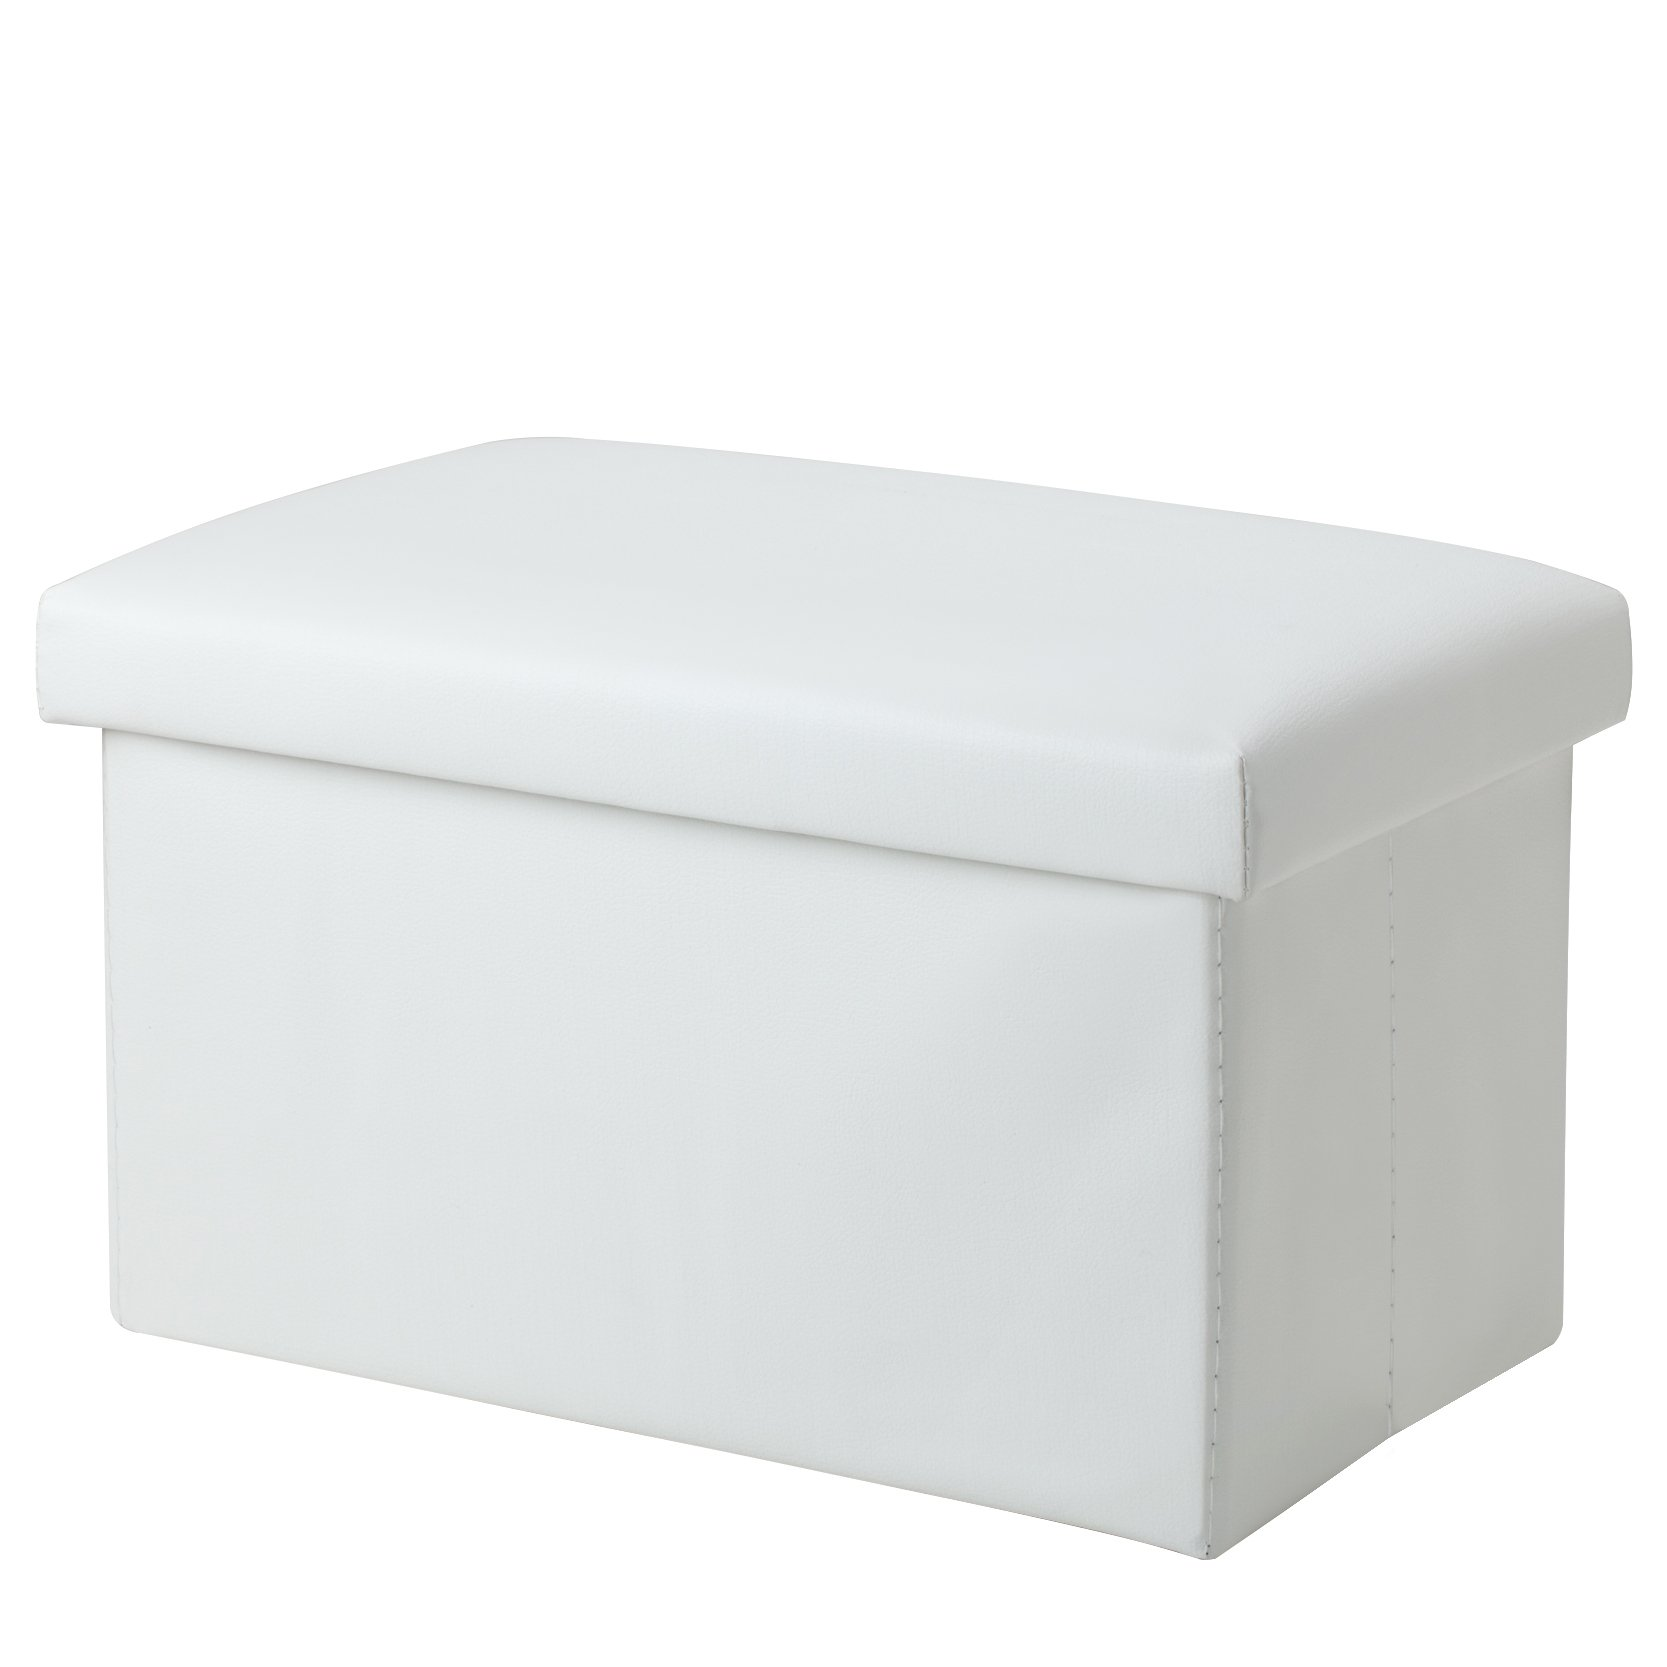 Foldable Leather Storage Ottoman Bench Footrest Stool, Coffee Table Cube For Home, Office, Garden, Traveling, 18''x12''x12'' Folding Organizer Seat Prefect For Kids Adults (White)